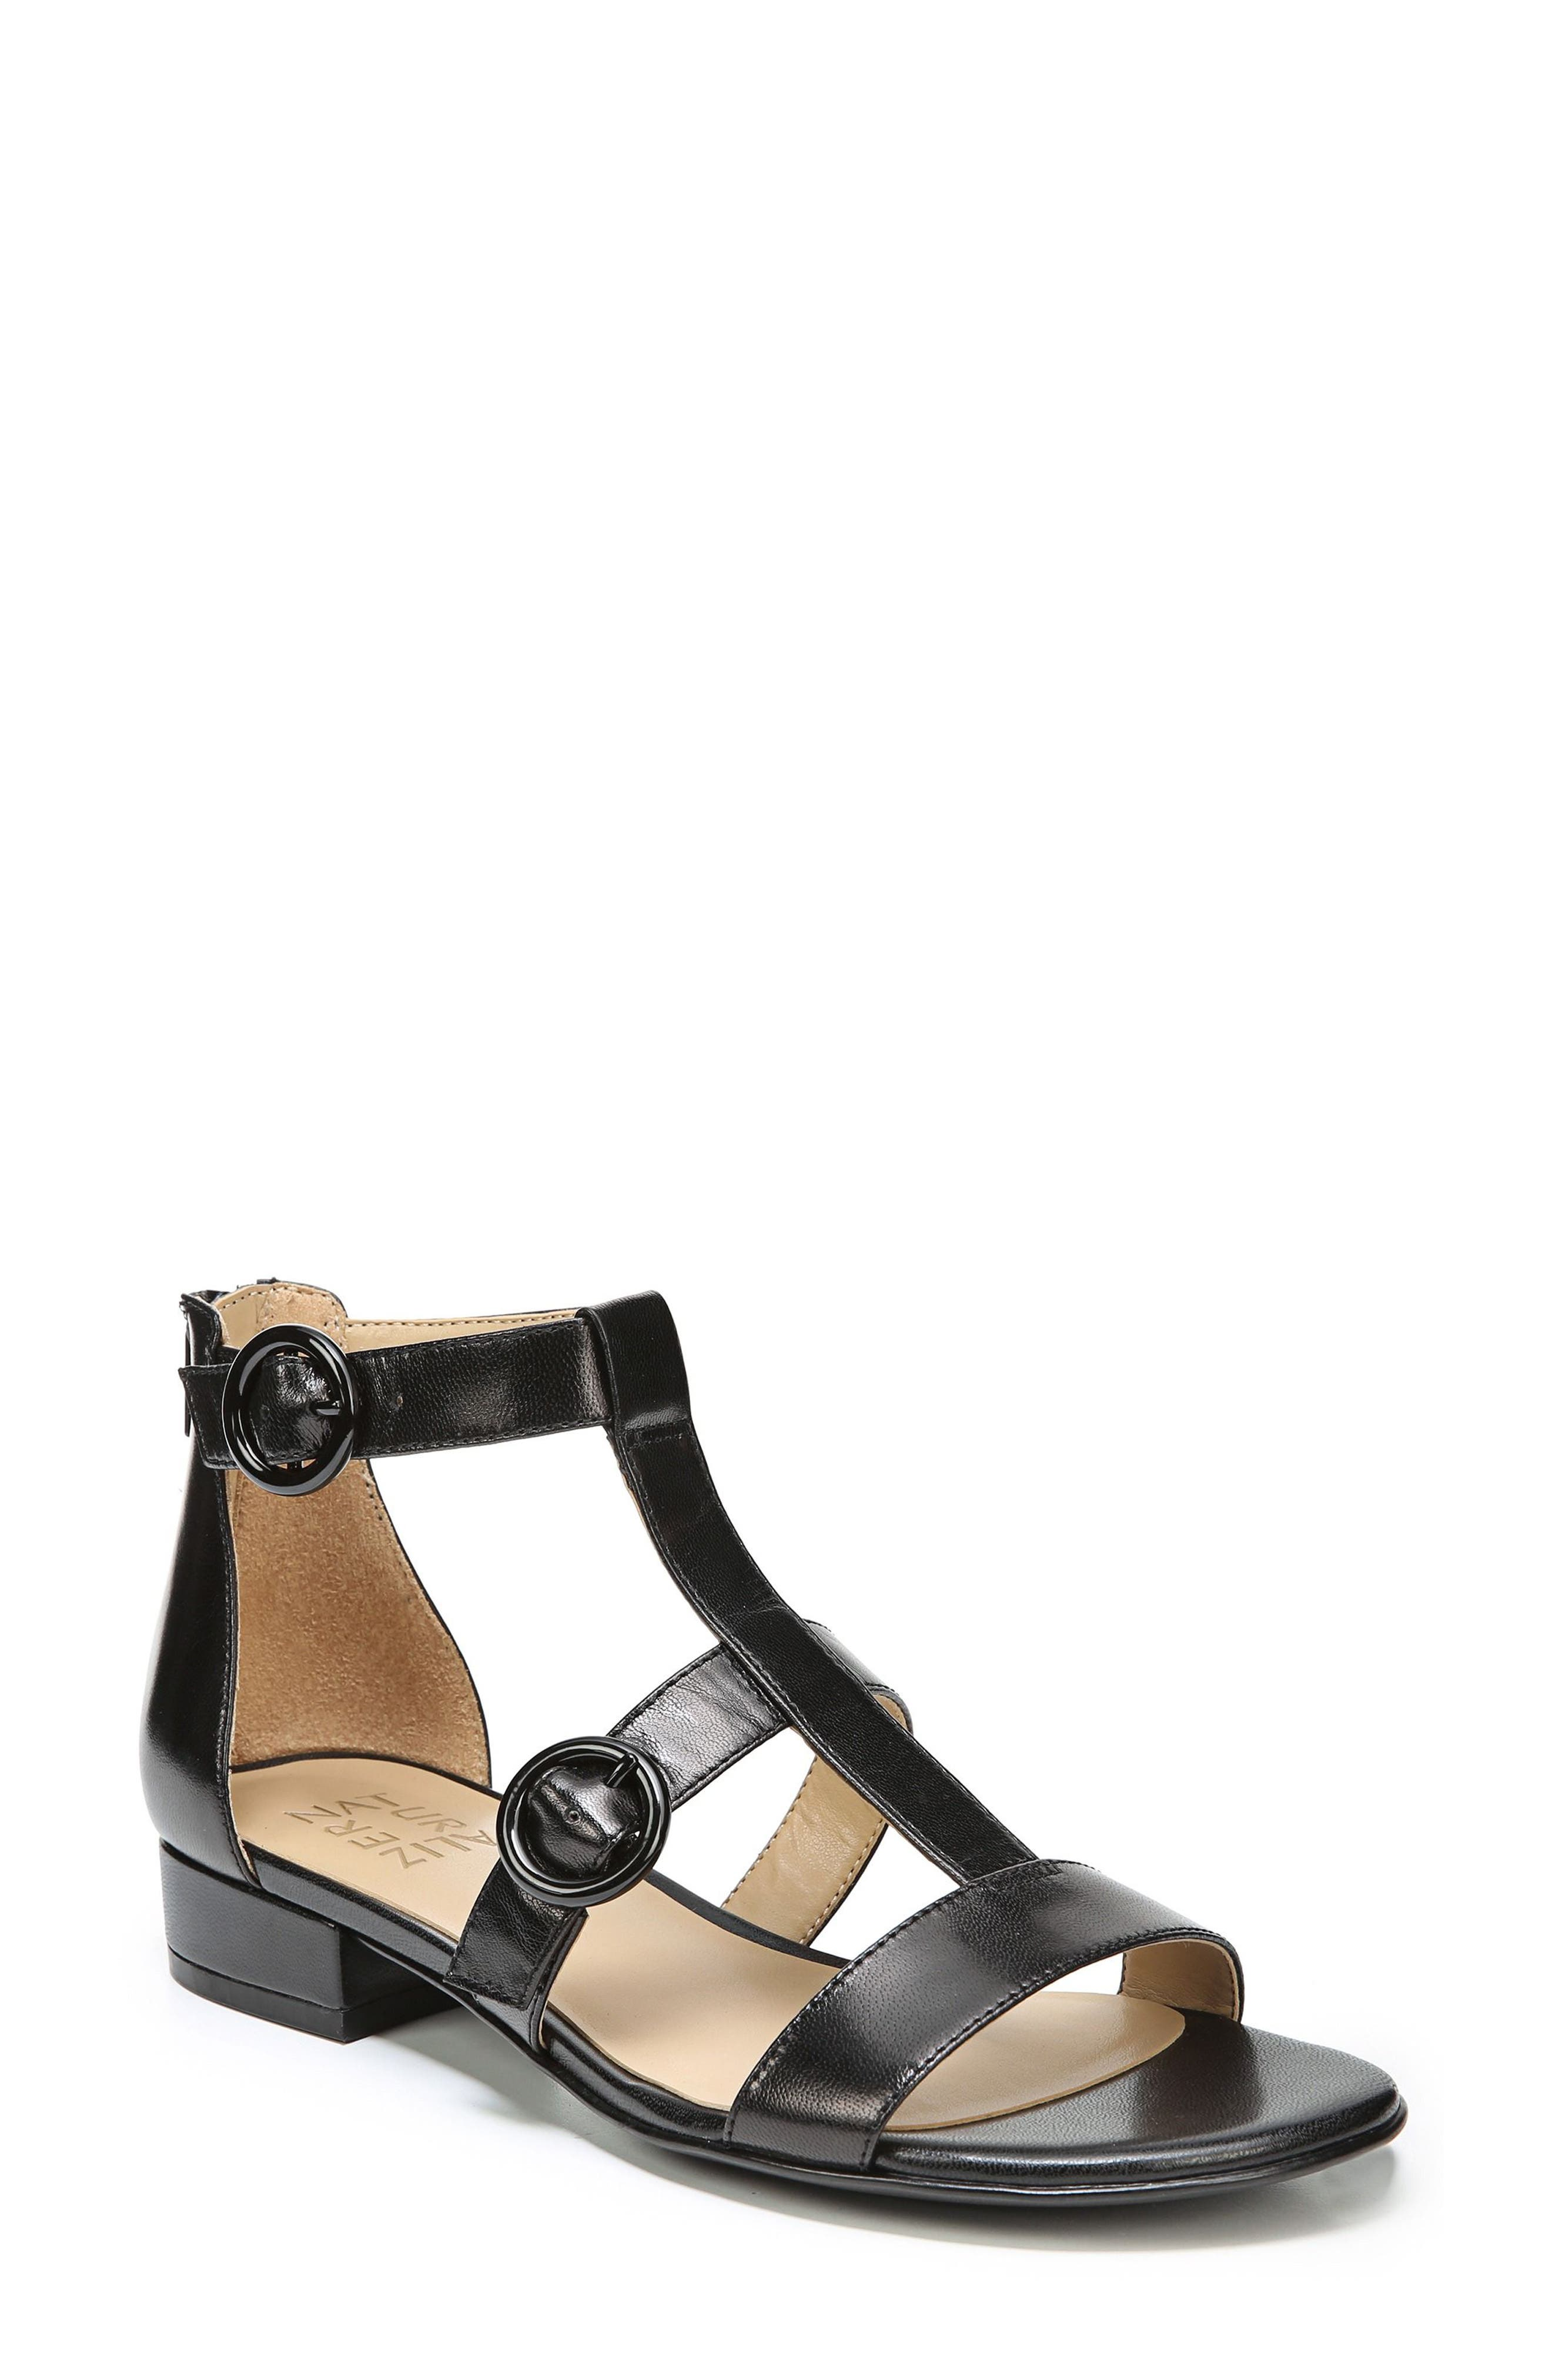 Mabel Sandal,                         Main,                         color, 001